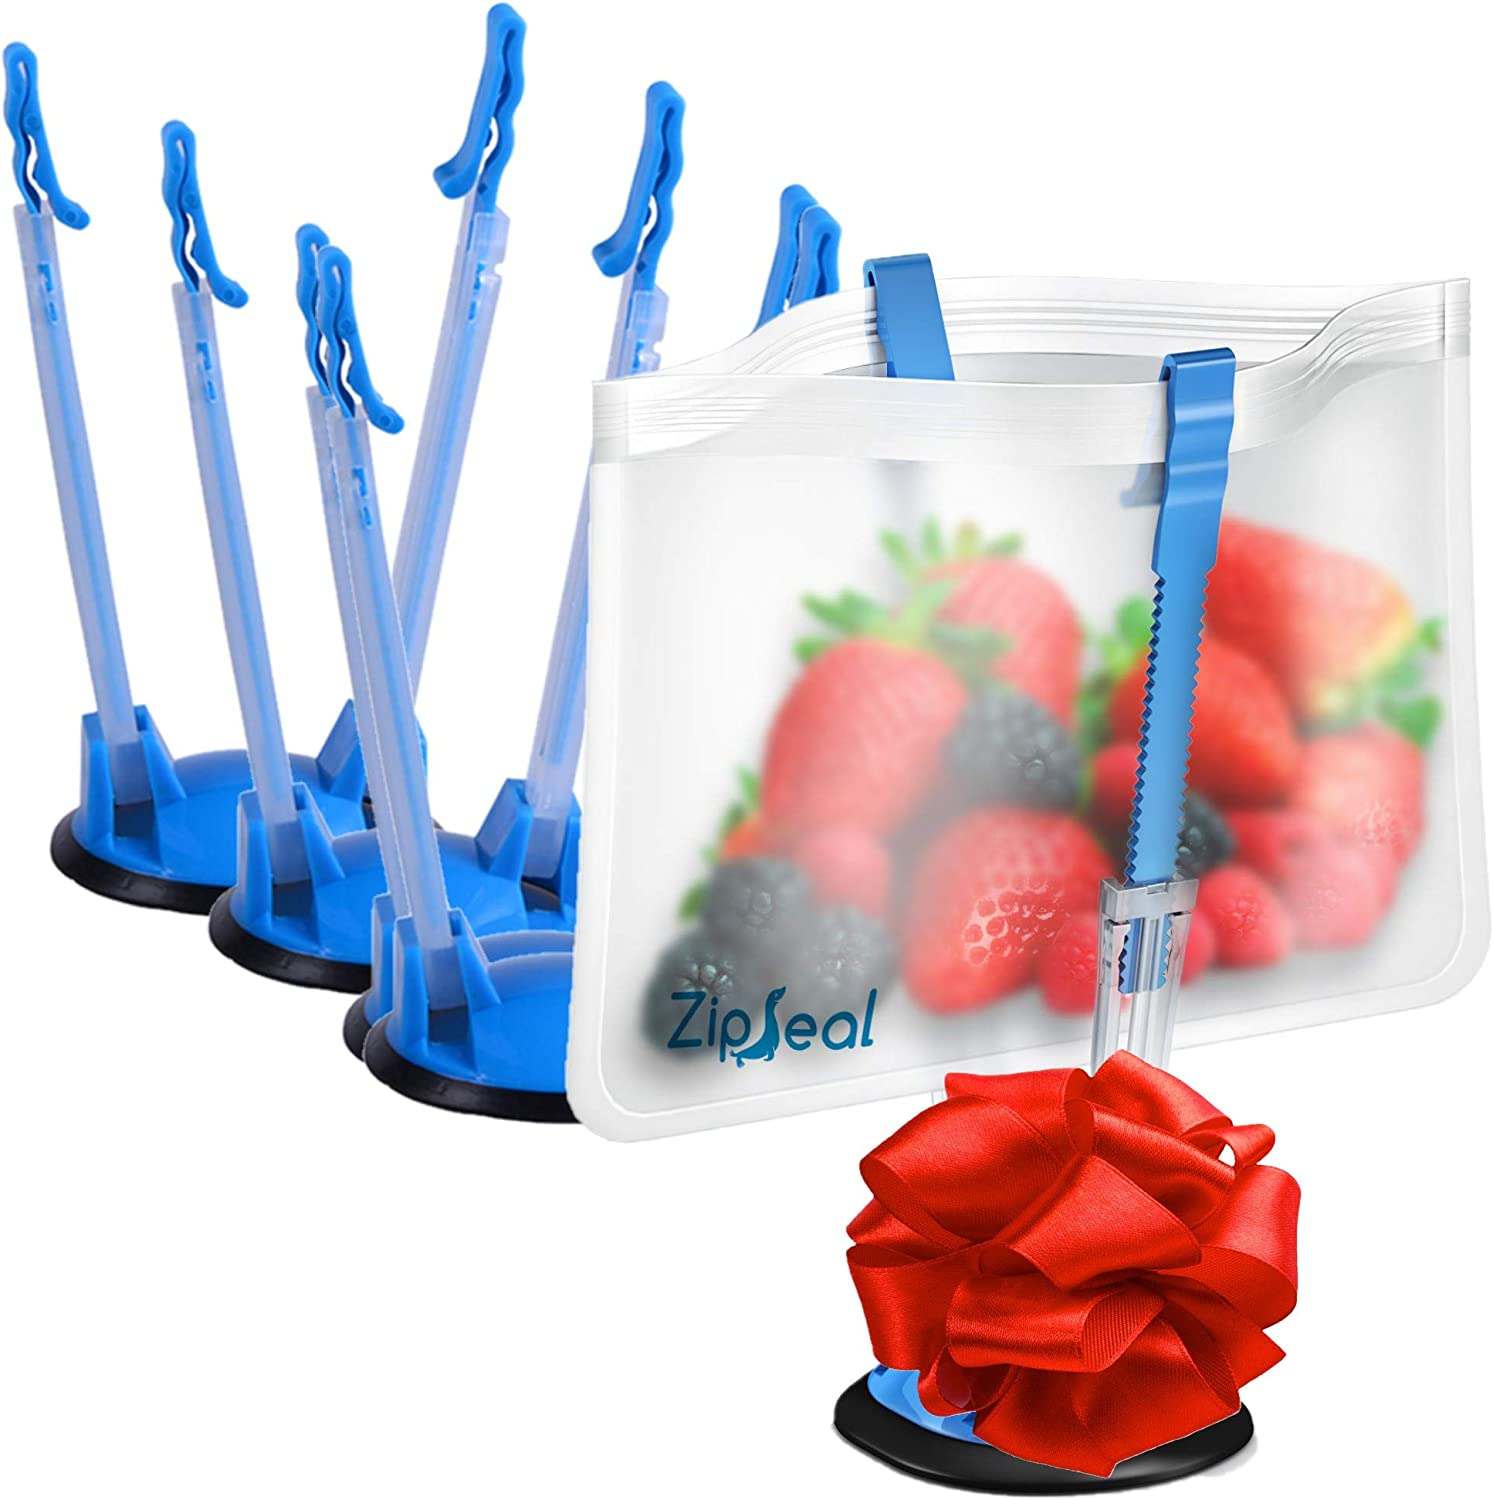 Baggy Rack Holders for Hands Free Freezer Meals Prep - Zip Lock Bag Stands for Baggy - 4 Pack - Baggie Holder Stand - Use Sandwich to Gallon Size Bags